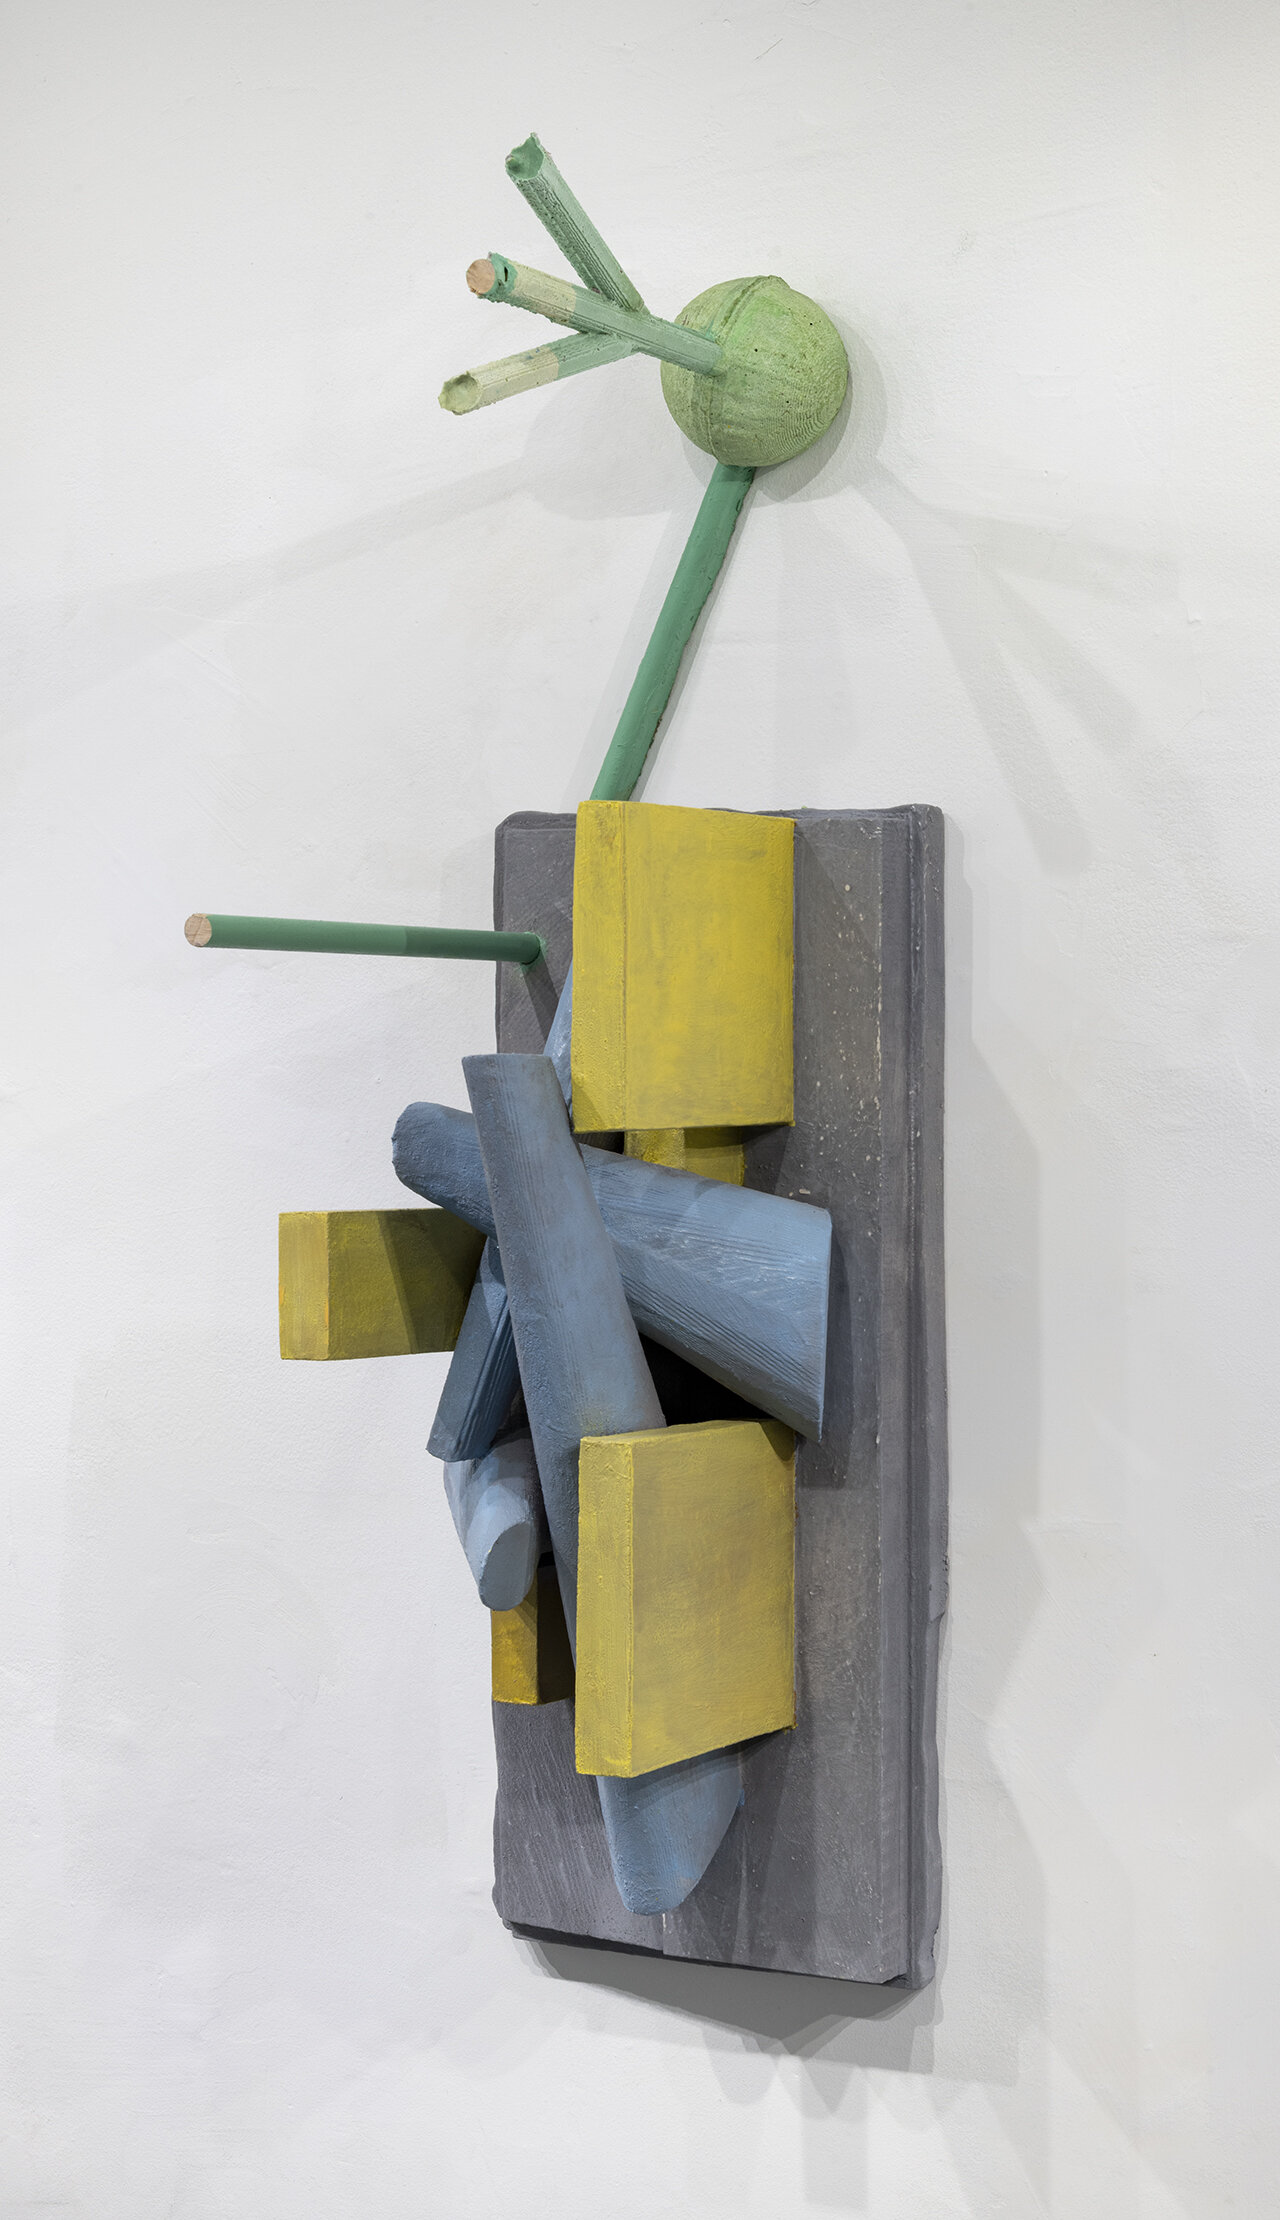 Andrew Ross  Predetermined Conical Scatter, 2019 eps foam, aqua resin, wood dowel, acrylic paint, pigment 36 x 11 x 13 inches